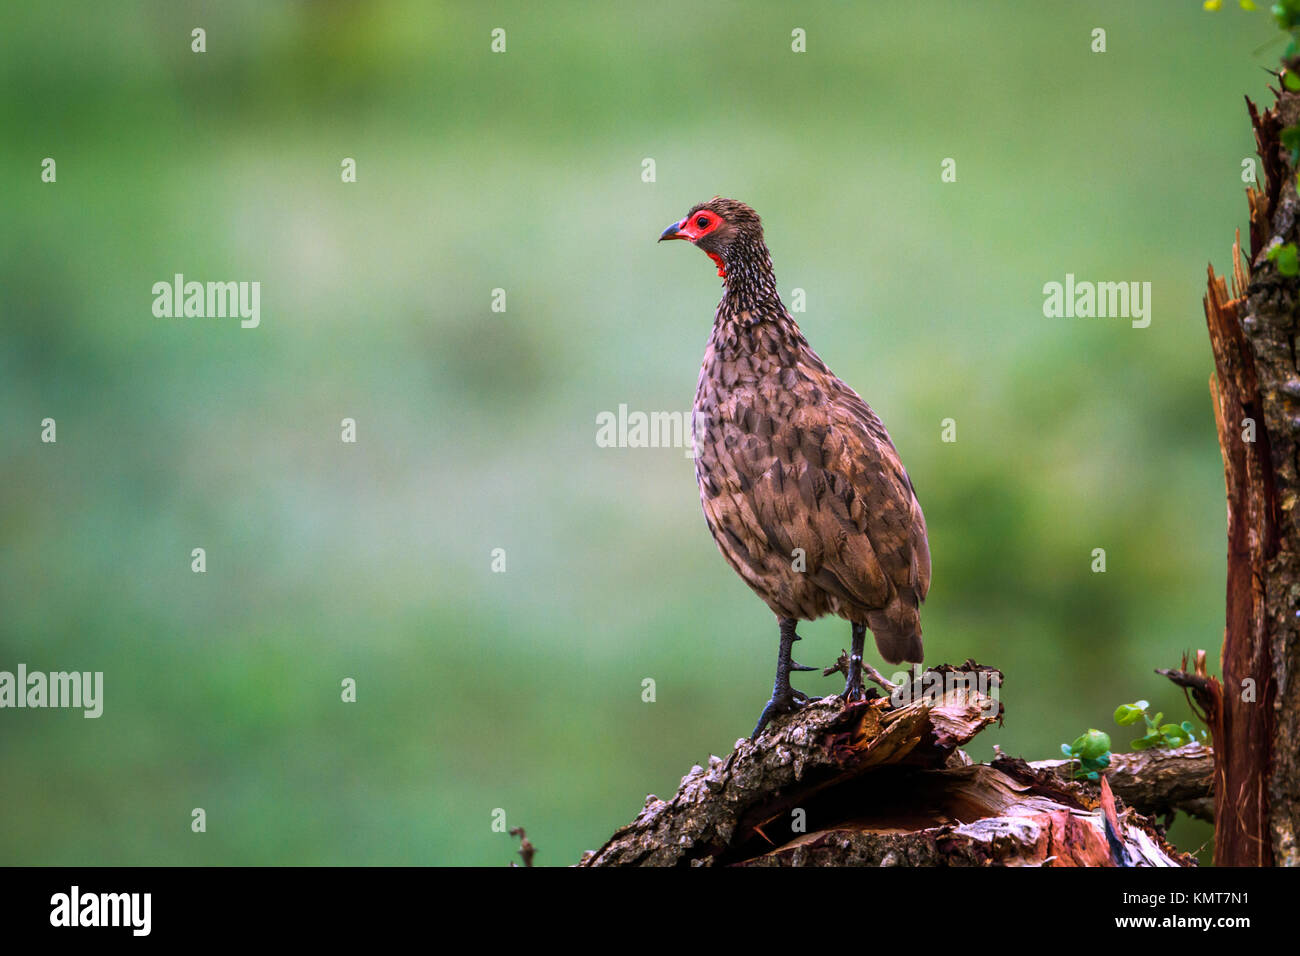 Swanson's spurfowl in Kruger national park, South Africa ; Specie Pternistis swainsonii family of Phasianidae - Stock Image